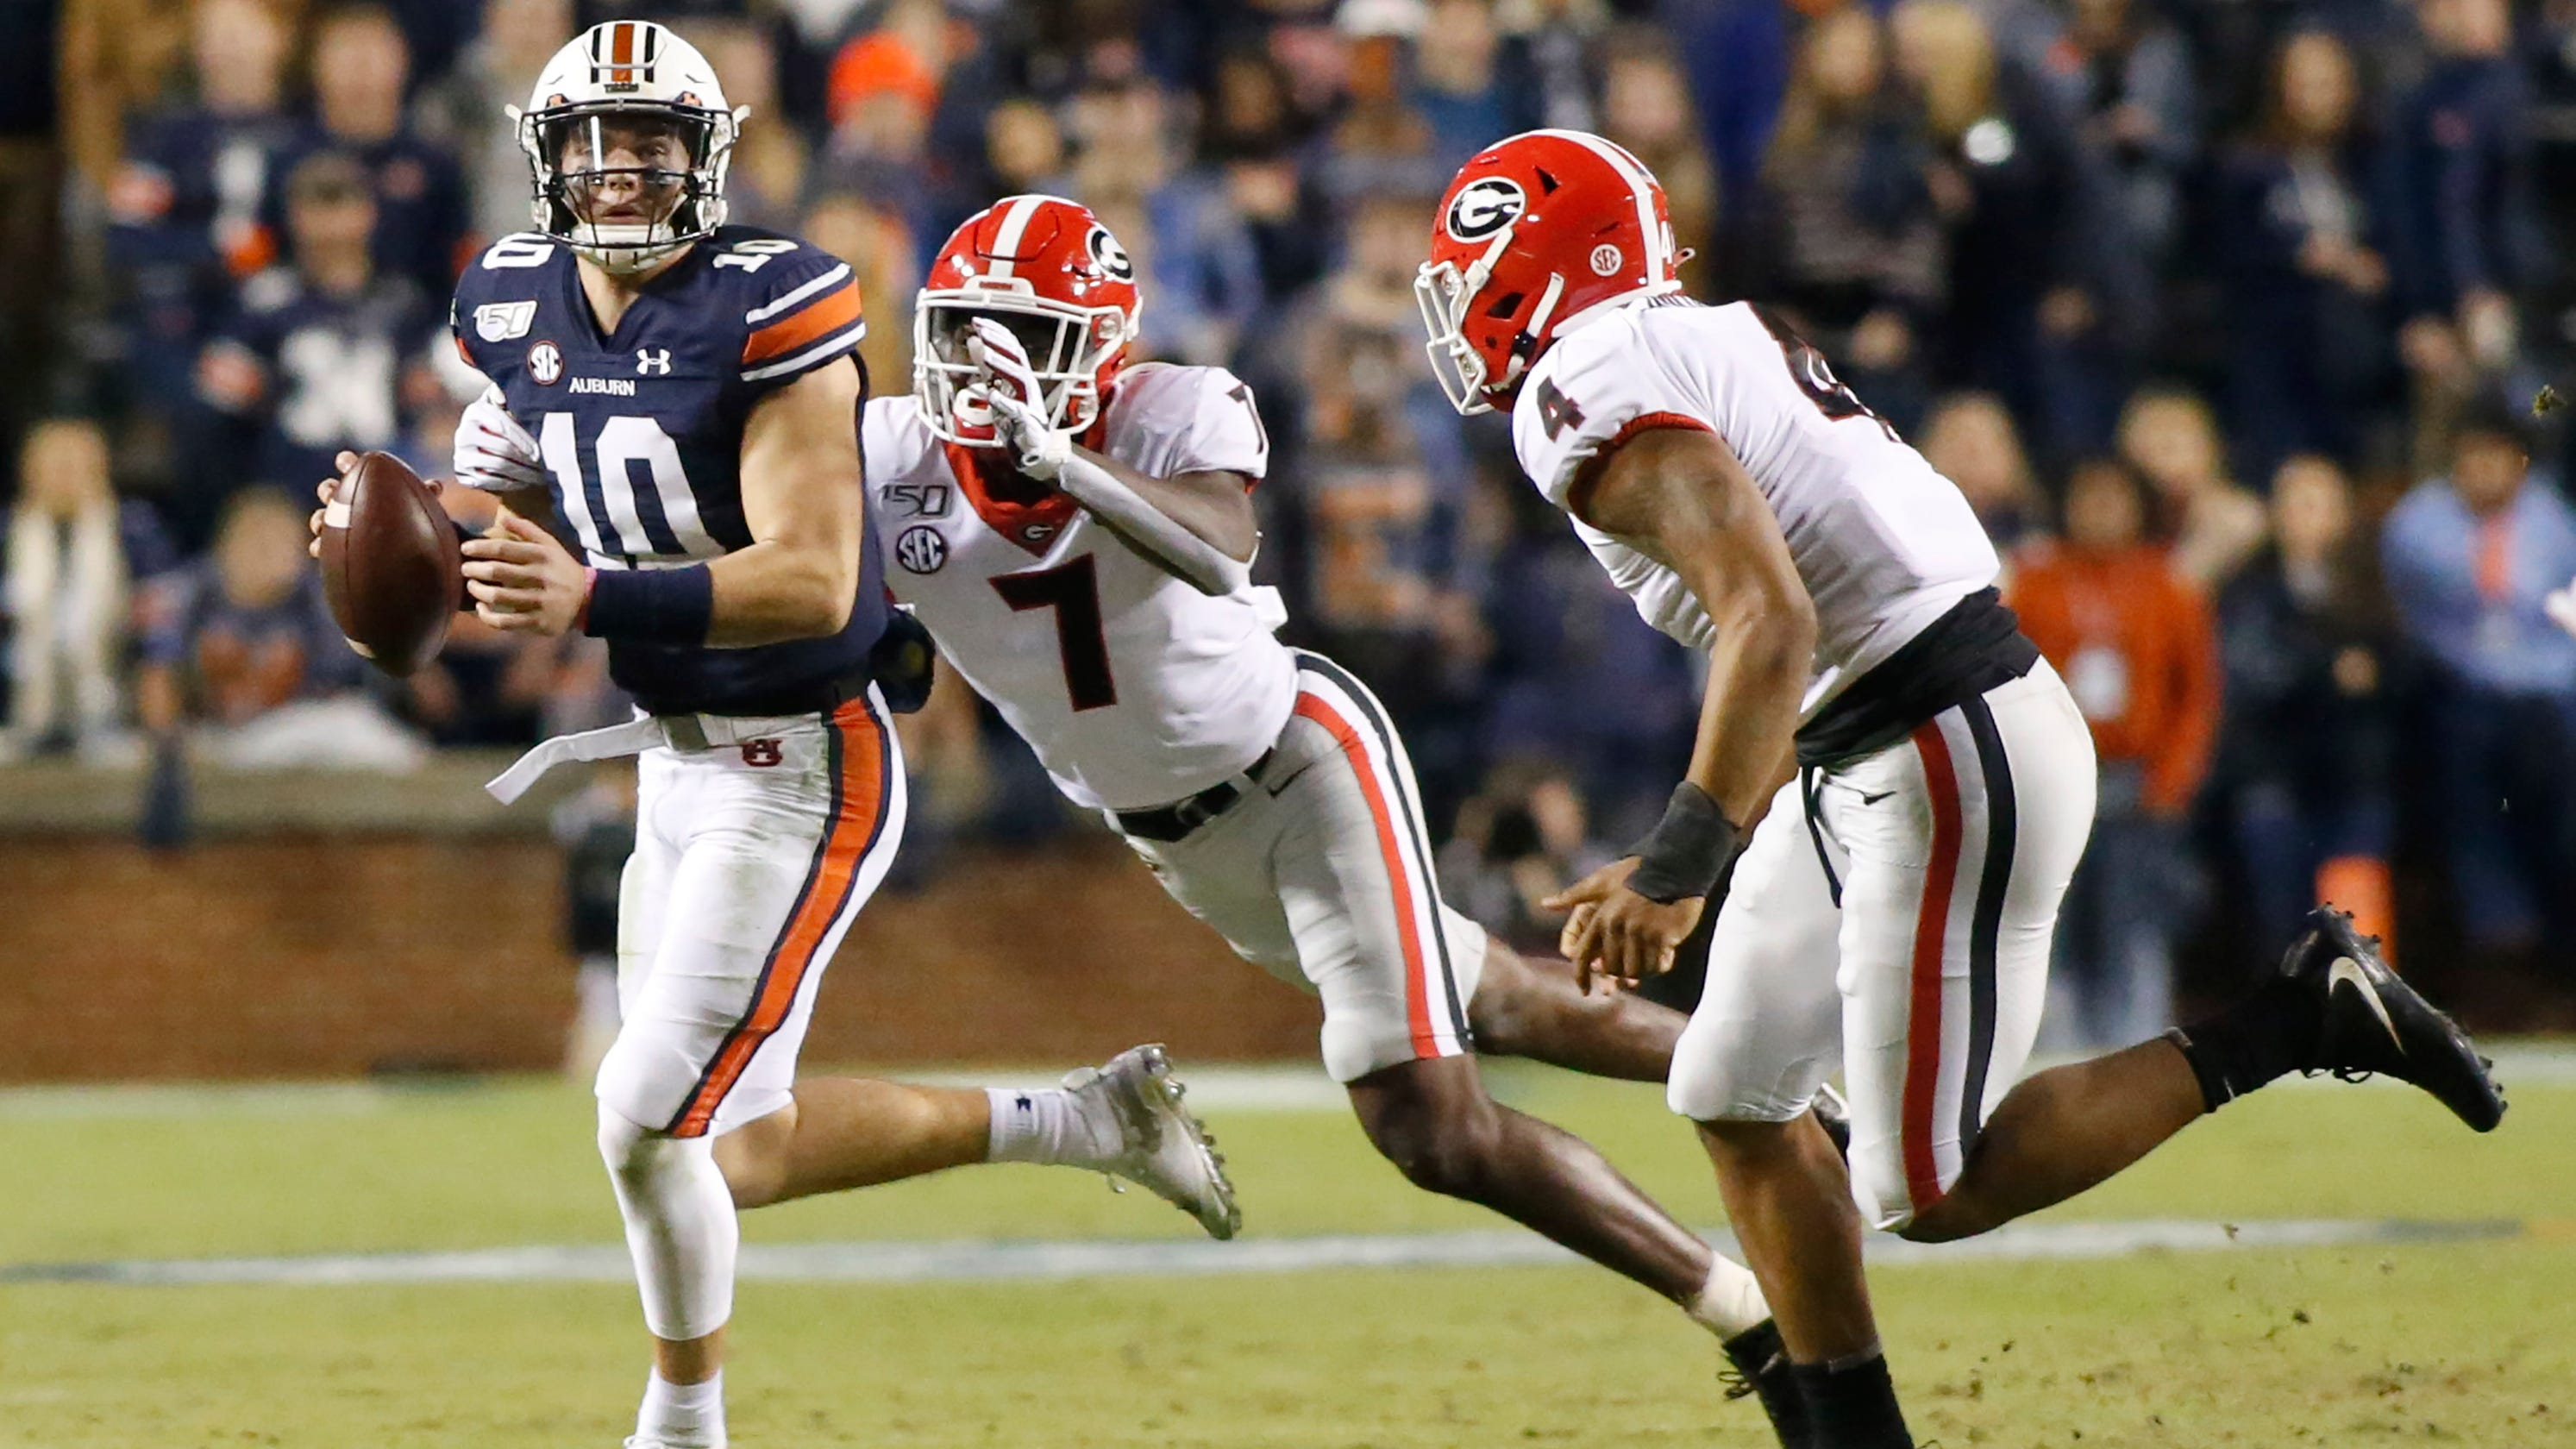 College football Week 5 games with playoff impact led by Georgia-Auburn